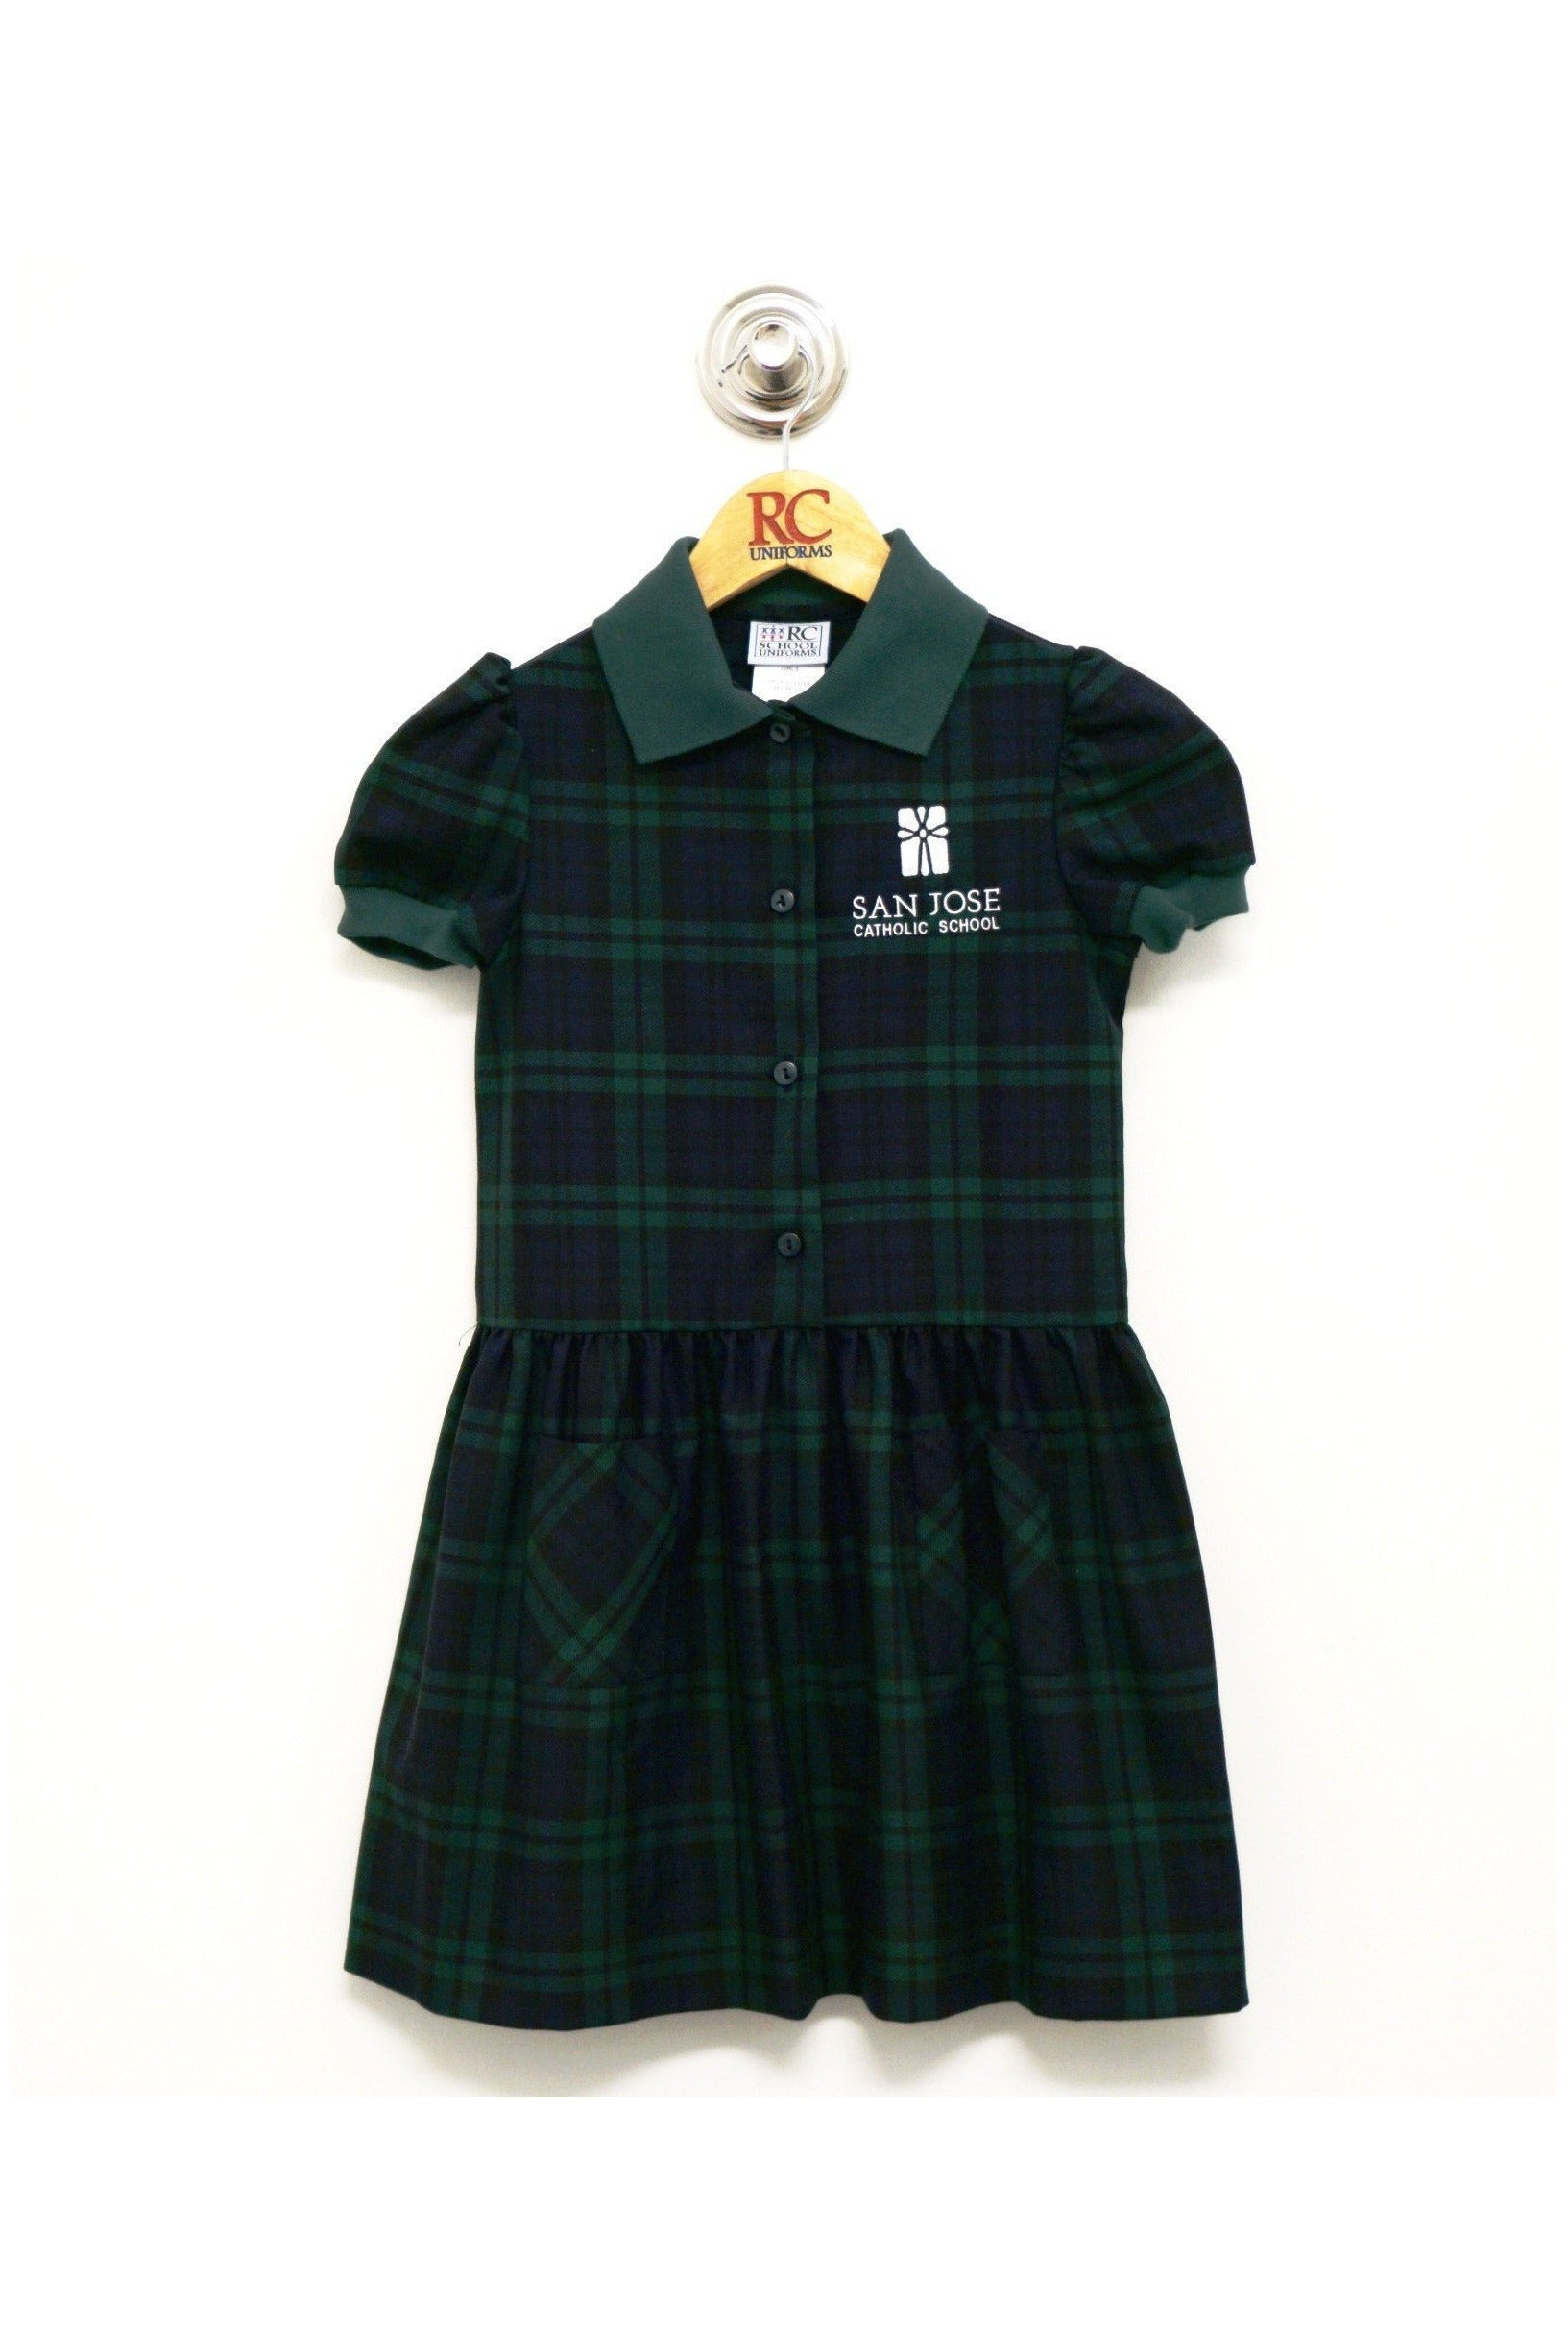 Plaid 189 Alice Dress - RC Uniforms